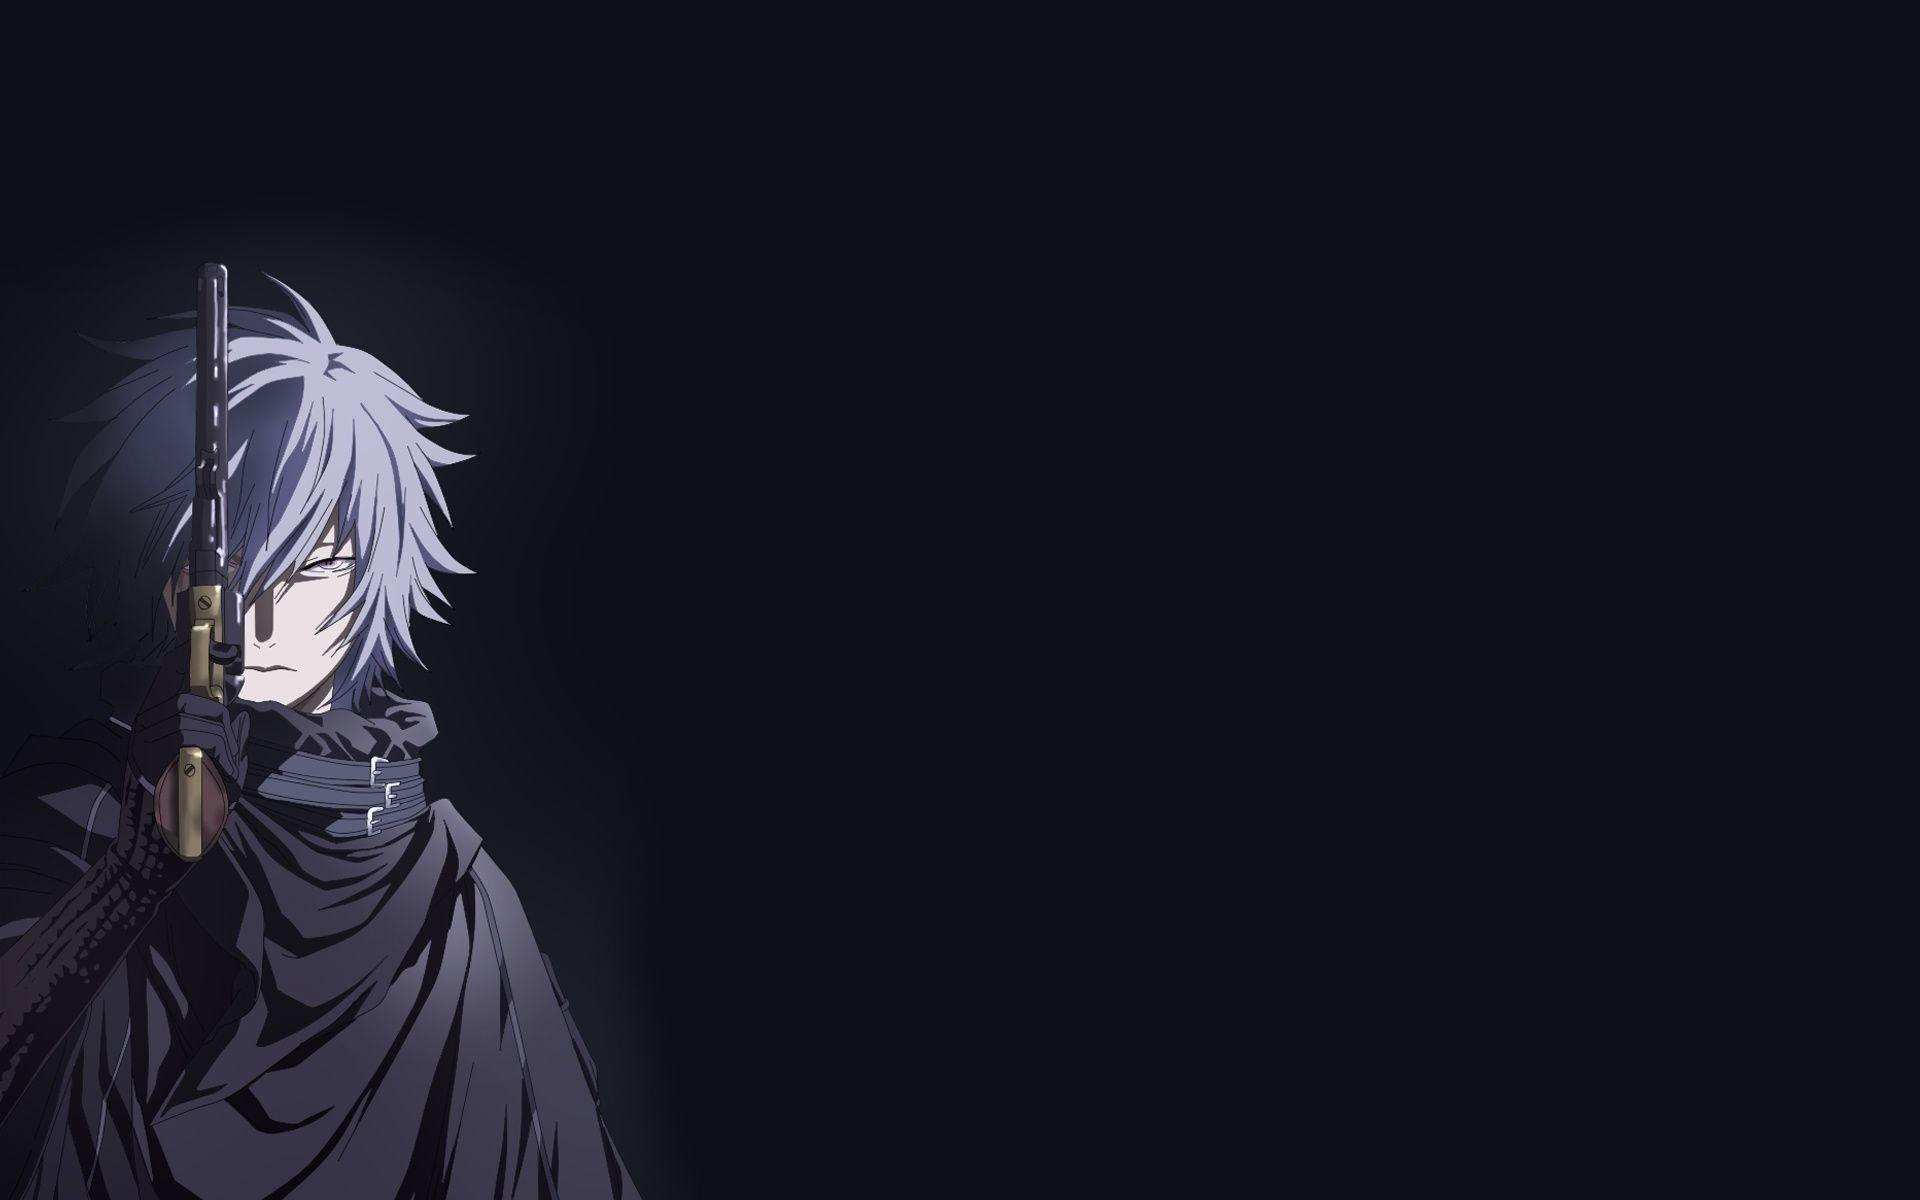 Black Anime Pc Wallpapers Wallpaper Cave